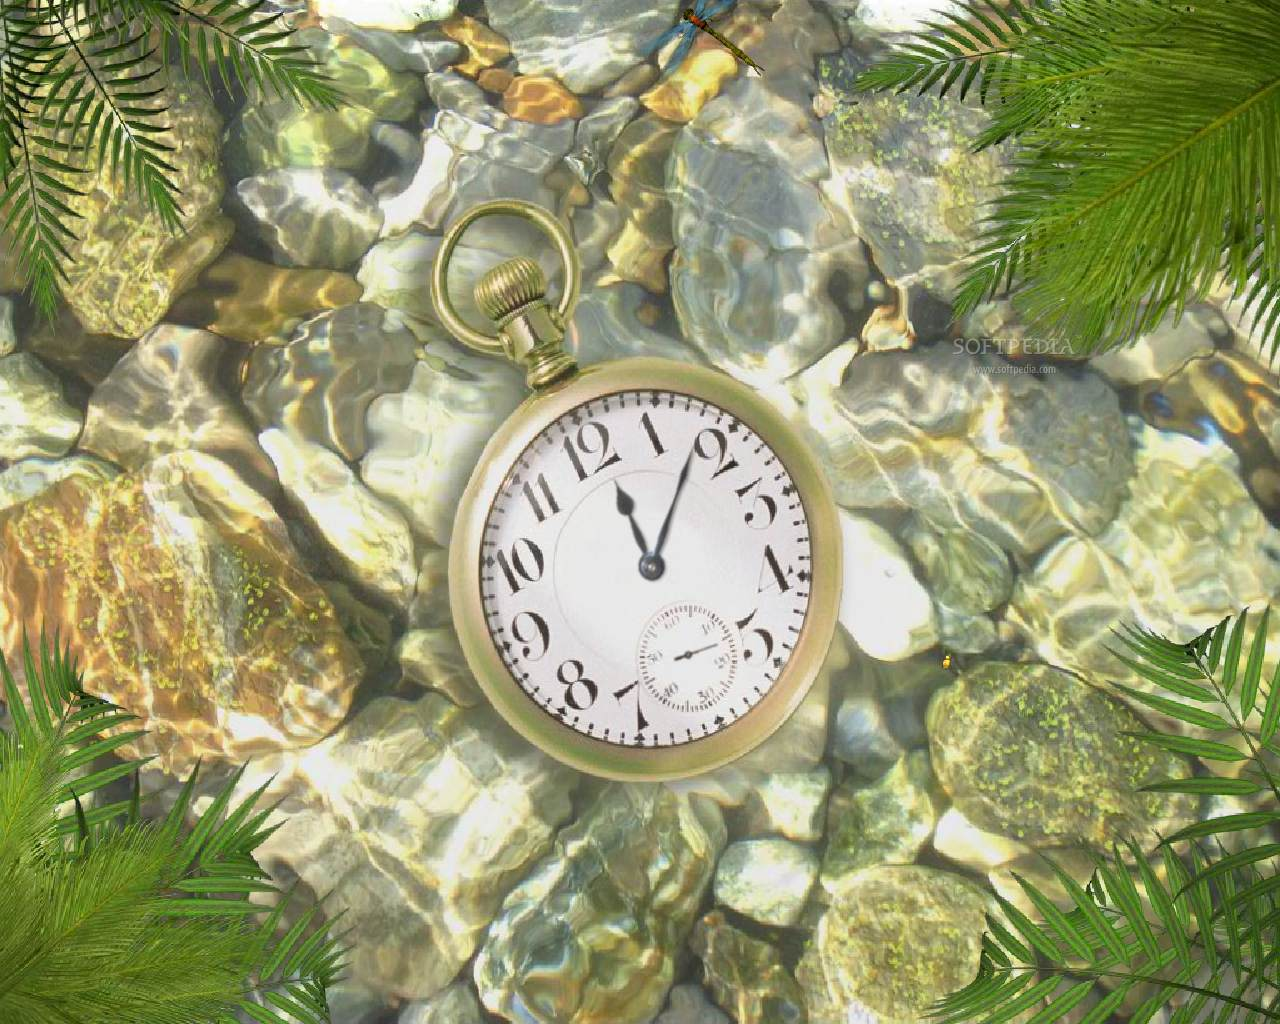 Underwater Clock   Animated Wallpaper   This is the image that will be 1280x1024